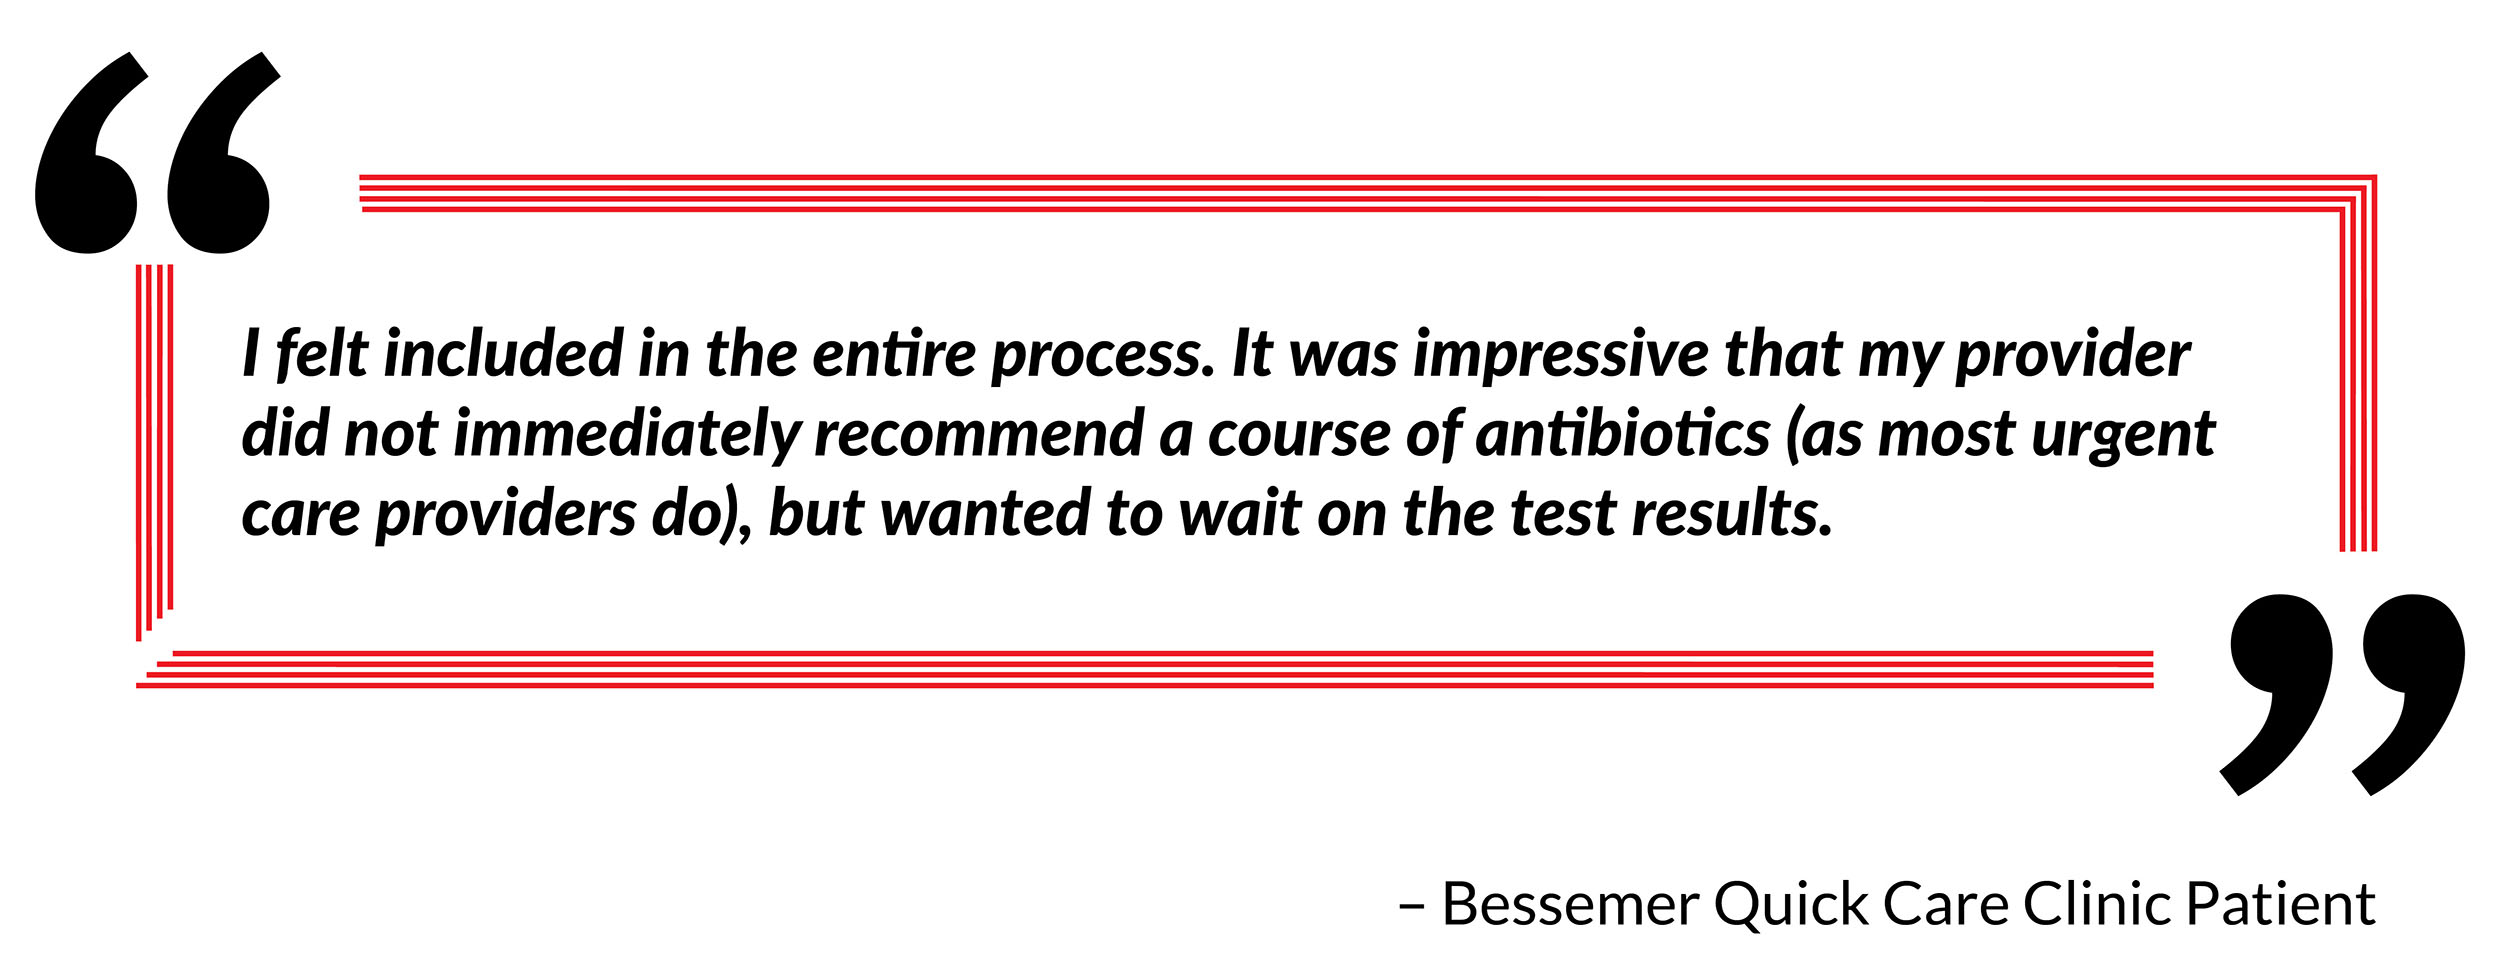 patient quote and testimonial on practice visit and services